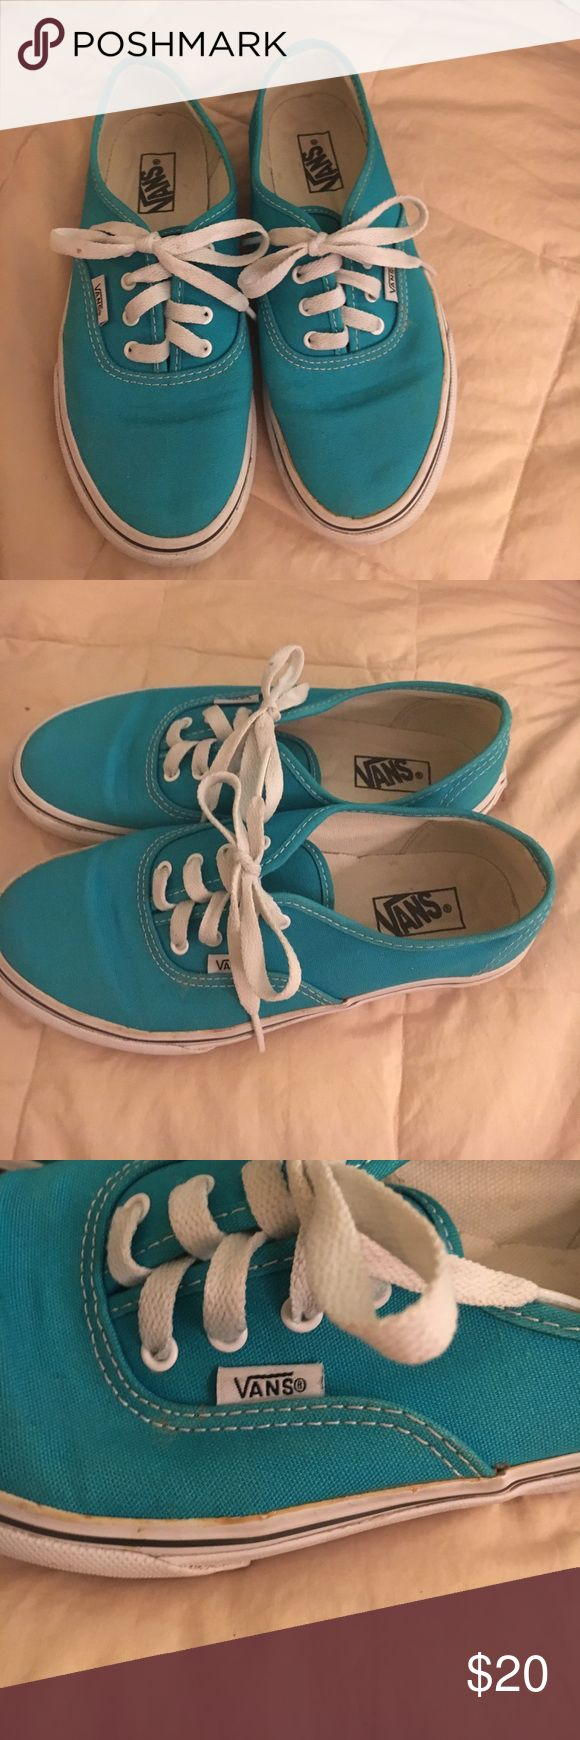 Turquoise Vans tennis shoes youth size 2.5 Turquoise Vans tennis shoes youth size 2.5 used Vans Shoes Sneakers